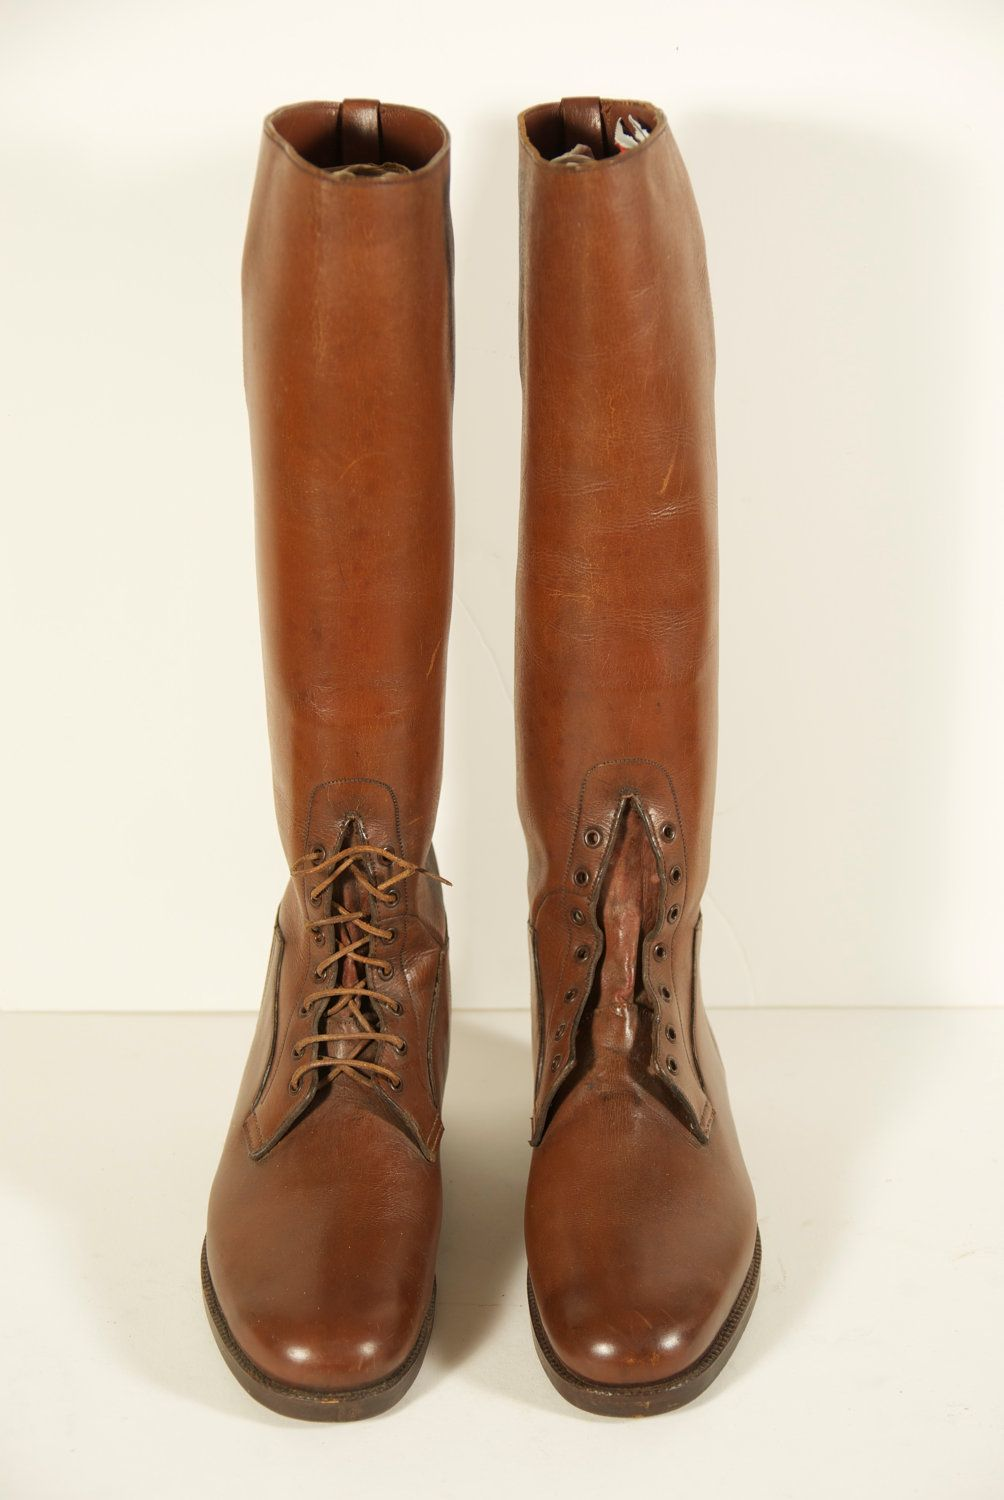 Vintage Dehner's Custom Made Men's Riding Boots